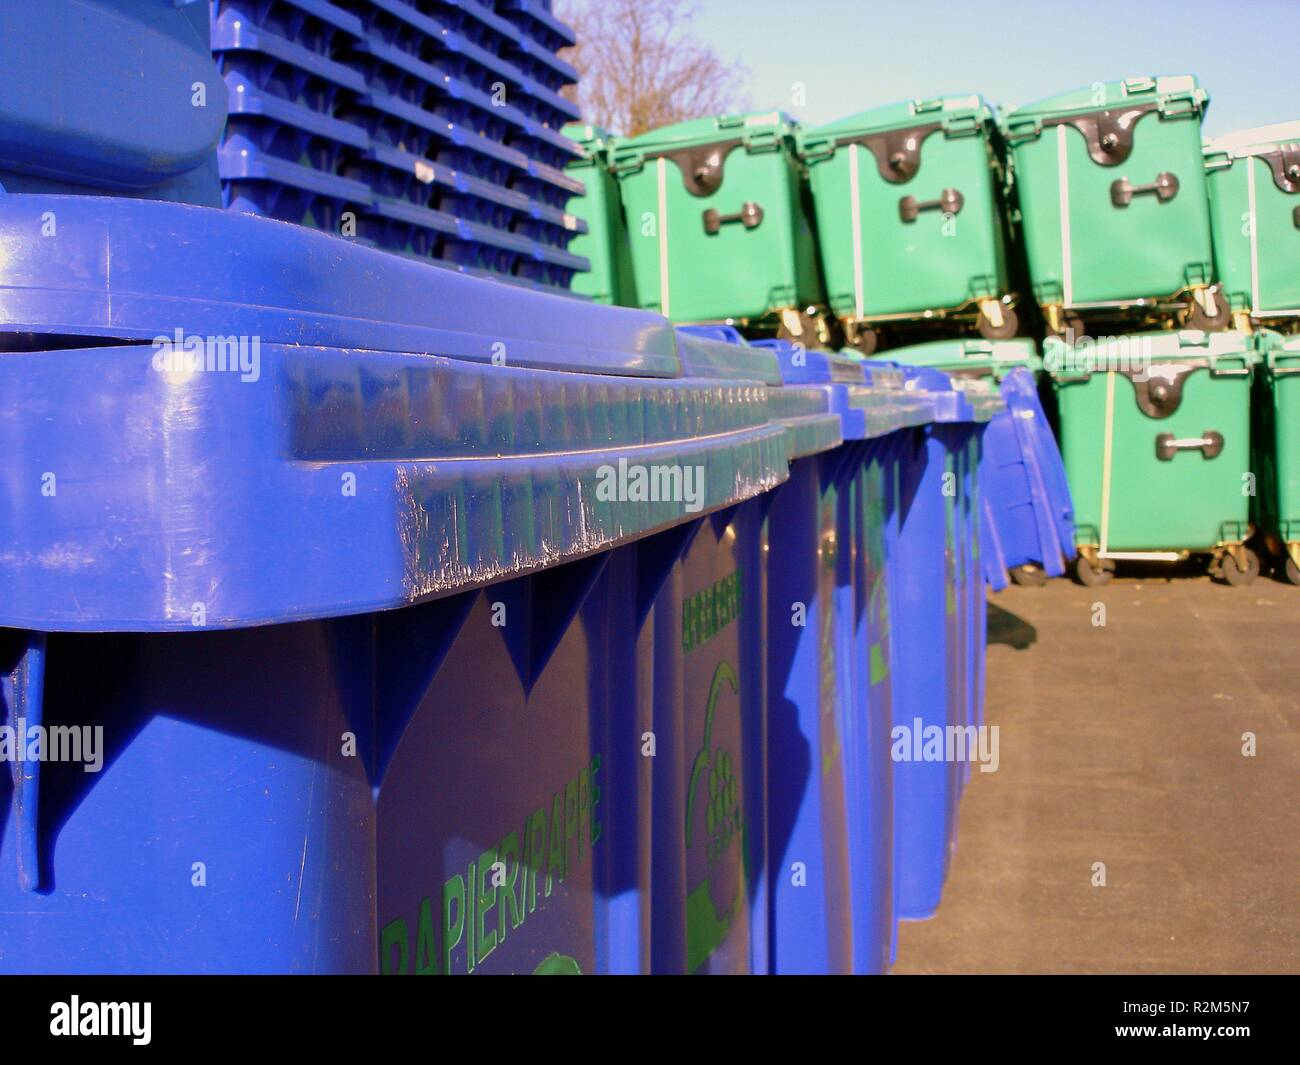 recycling center - Stock Image